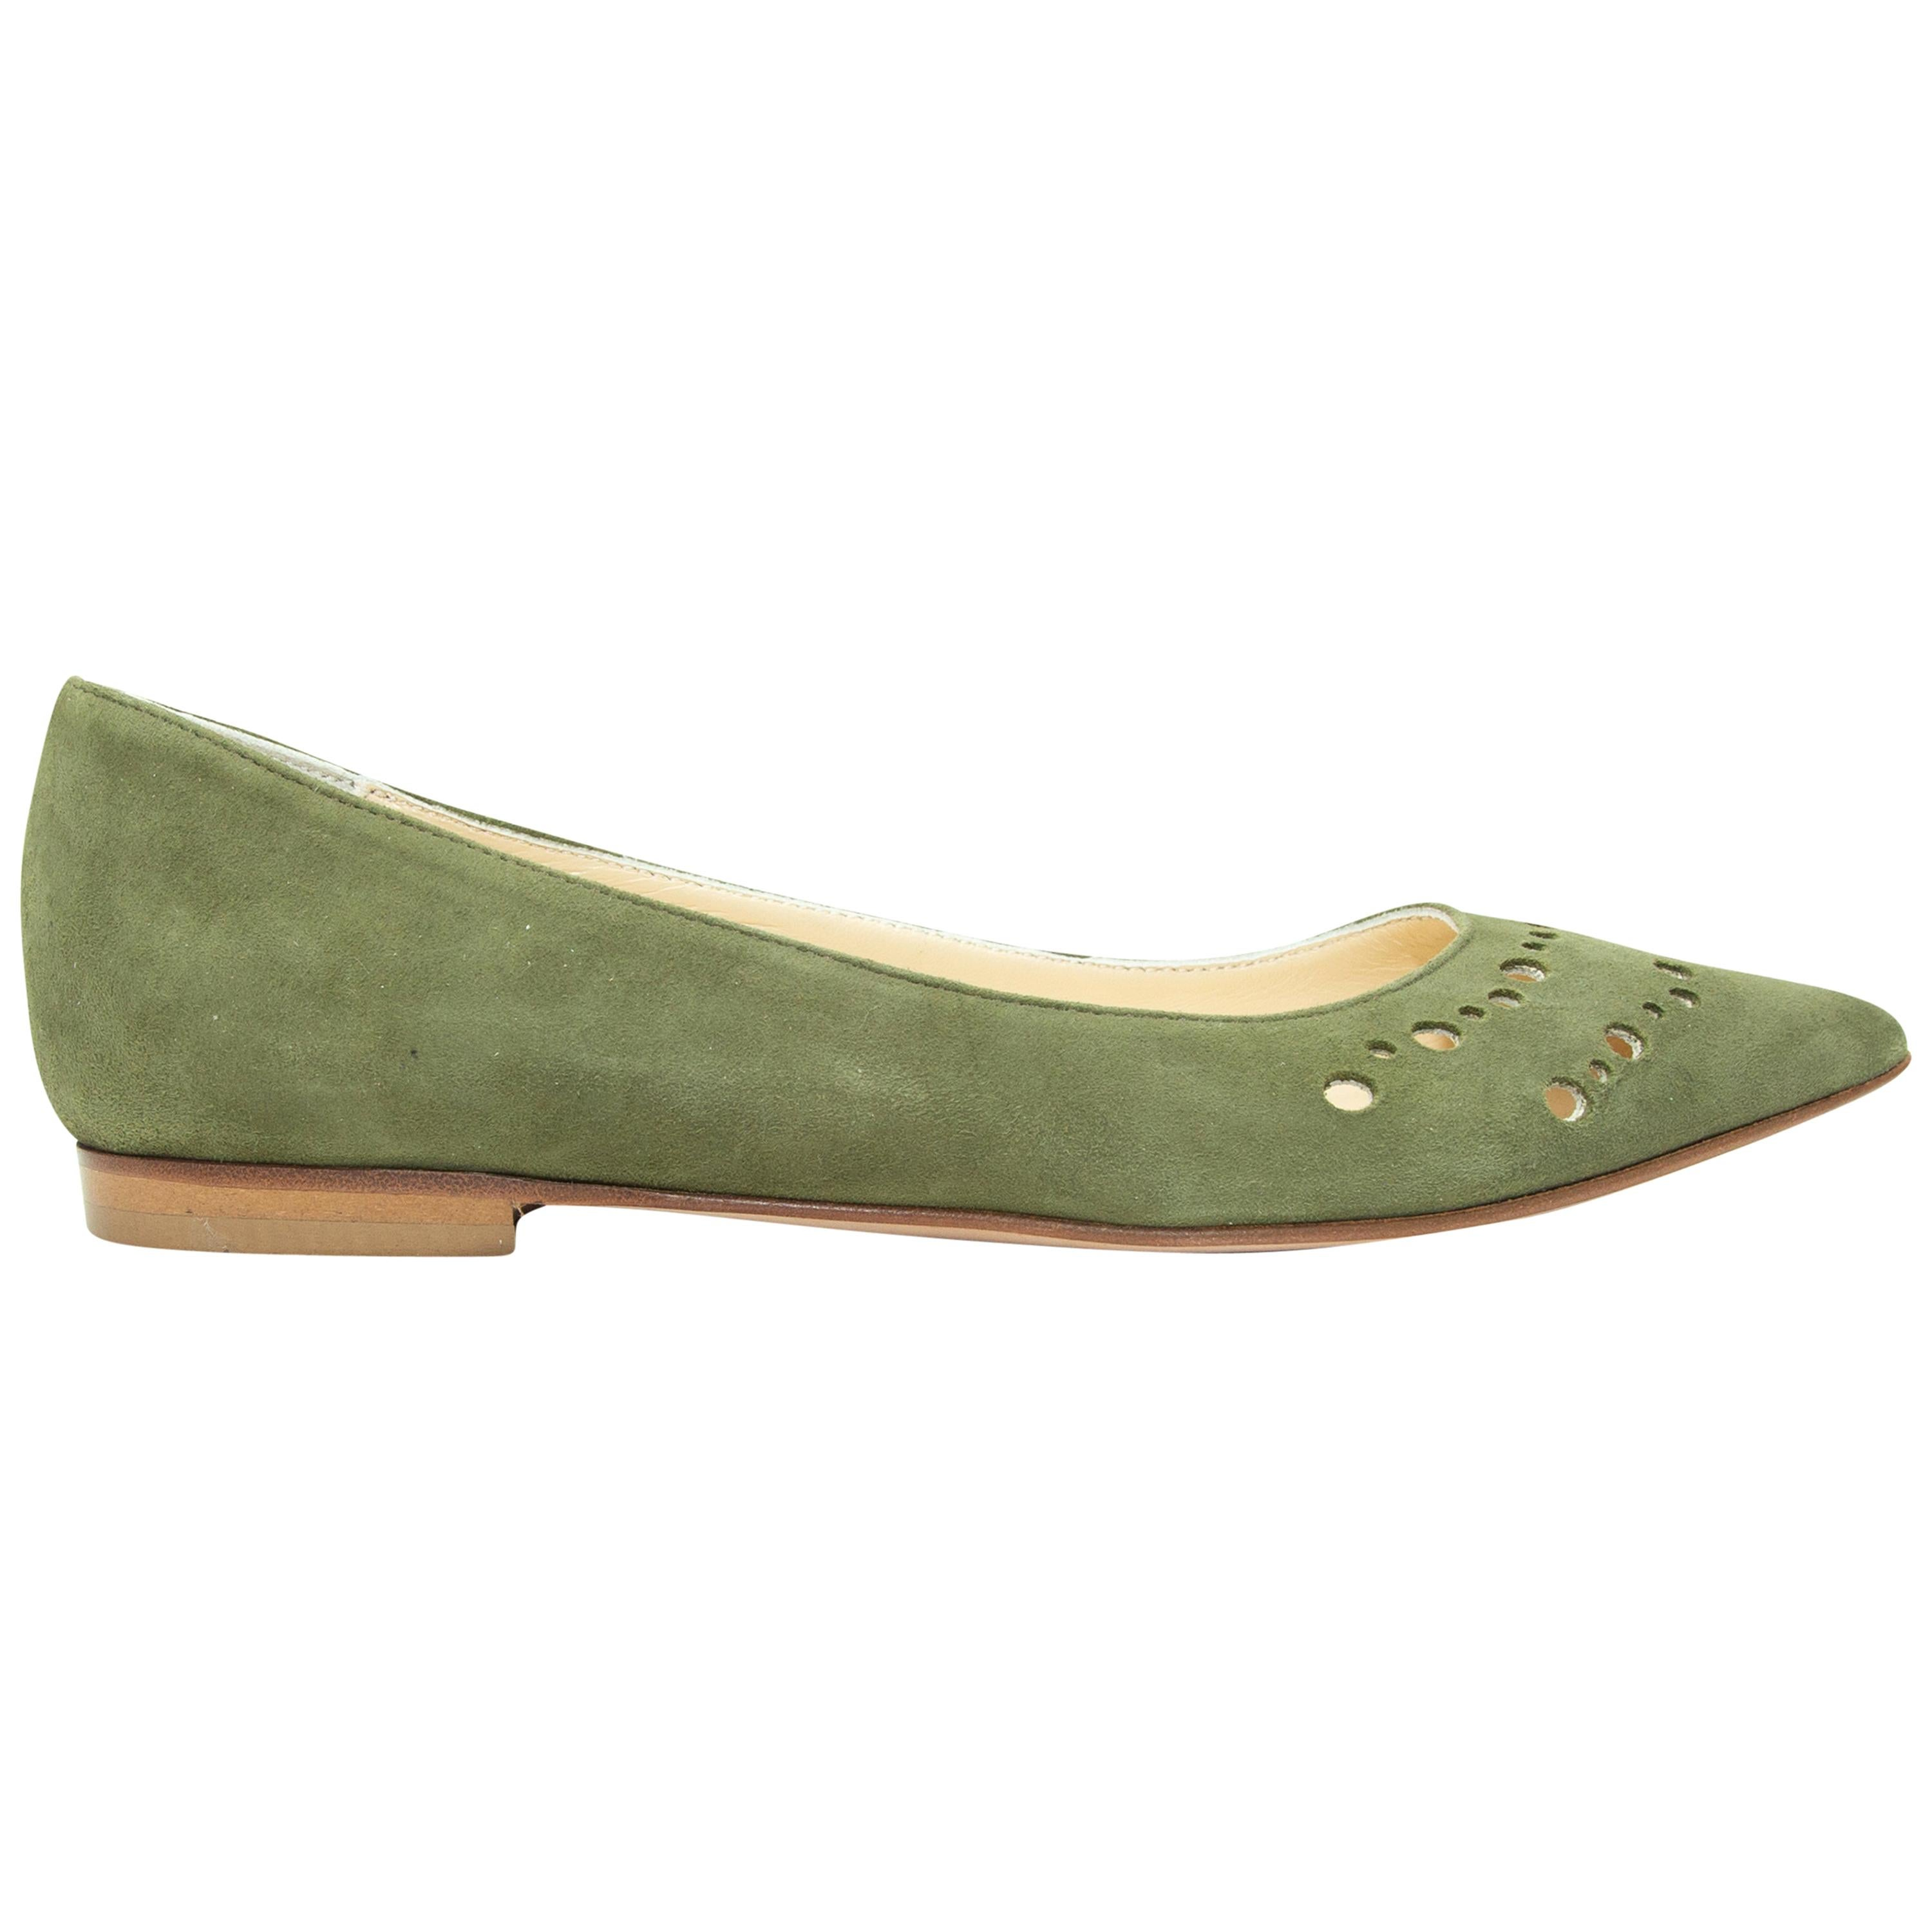 Butter Olive Green Suede Pointed-Toe Flats